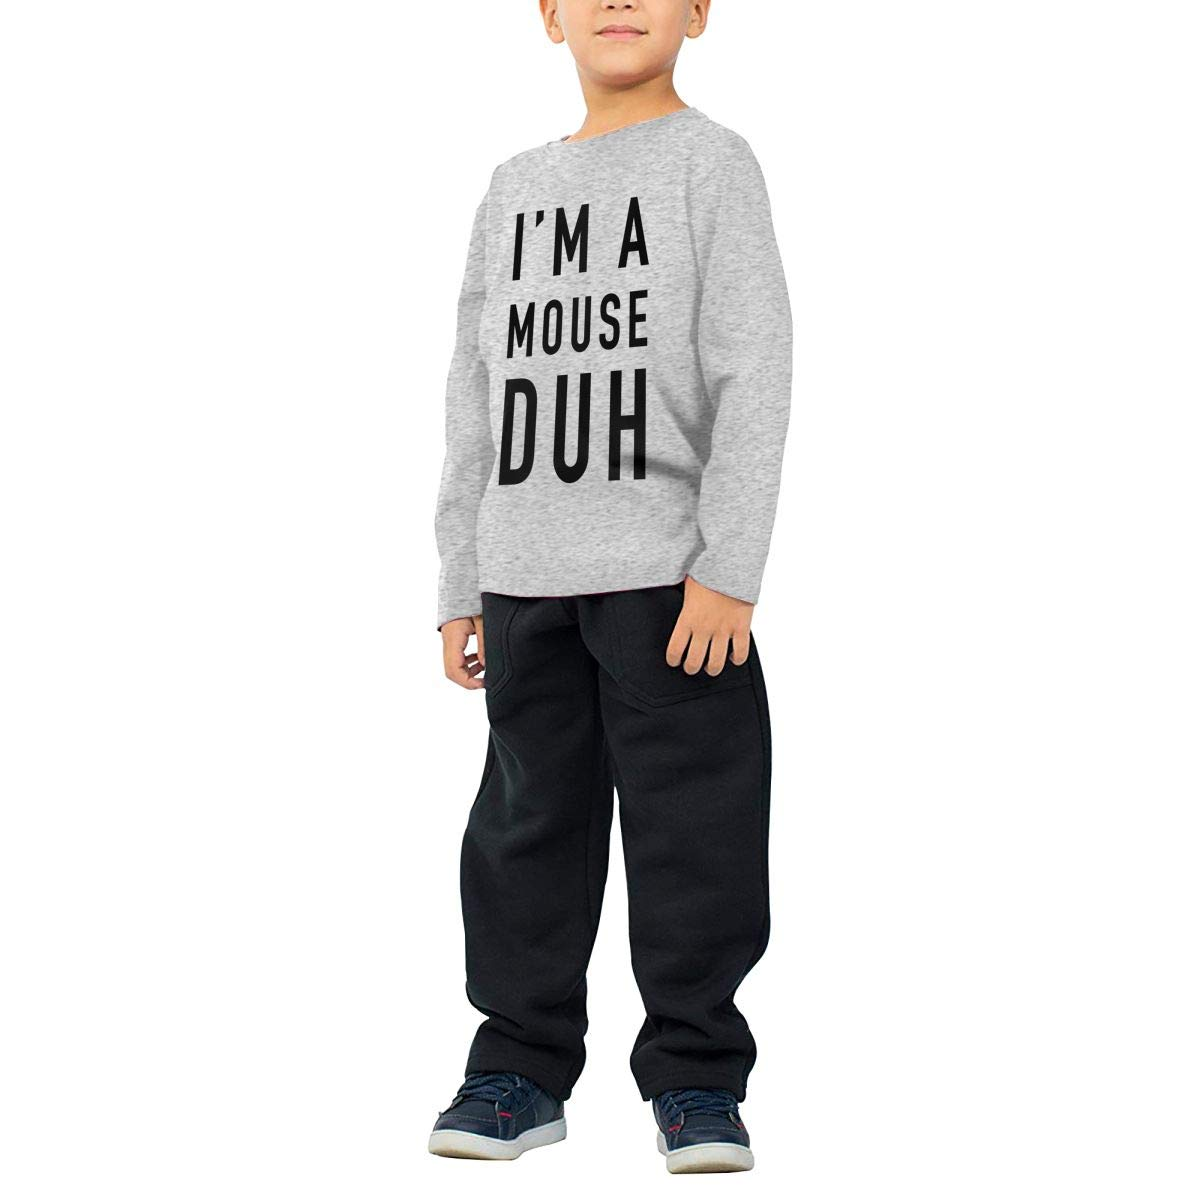 Im A Mouse Duh Youth Personalized Long Sleeve Shirt Cotton Round Collar T Shirts